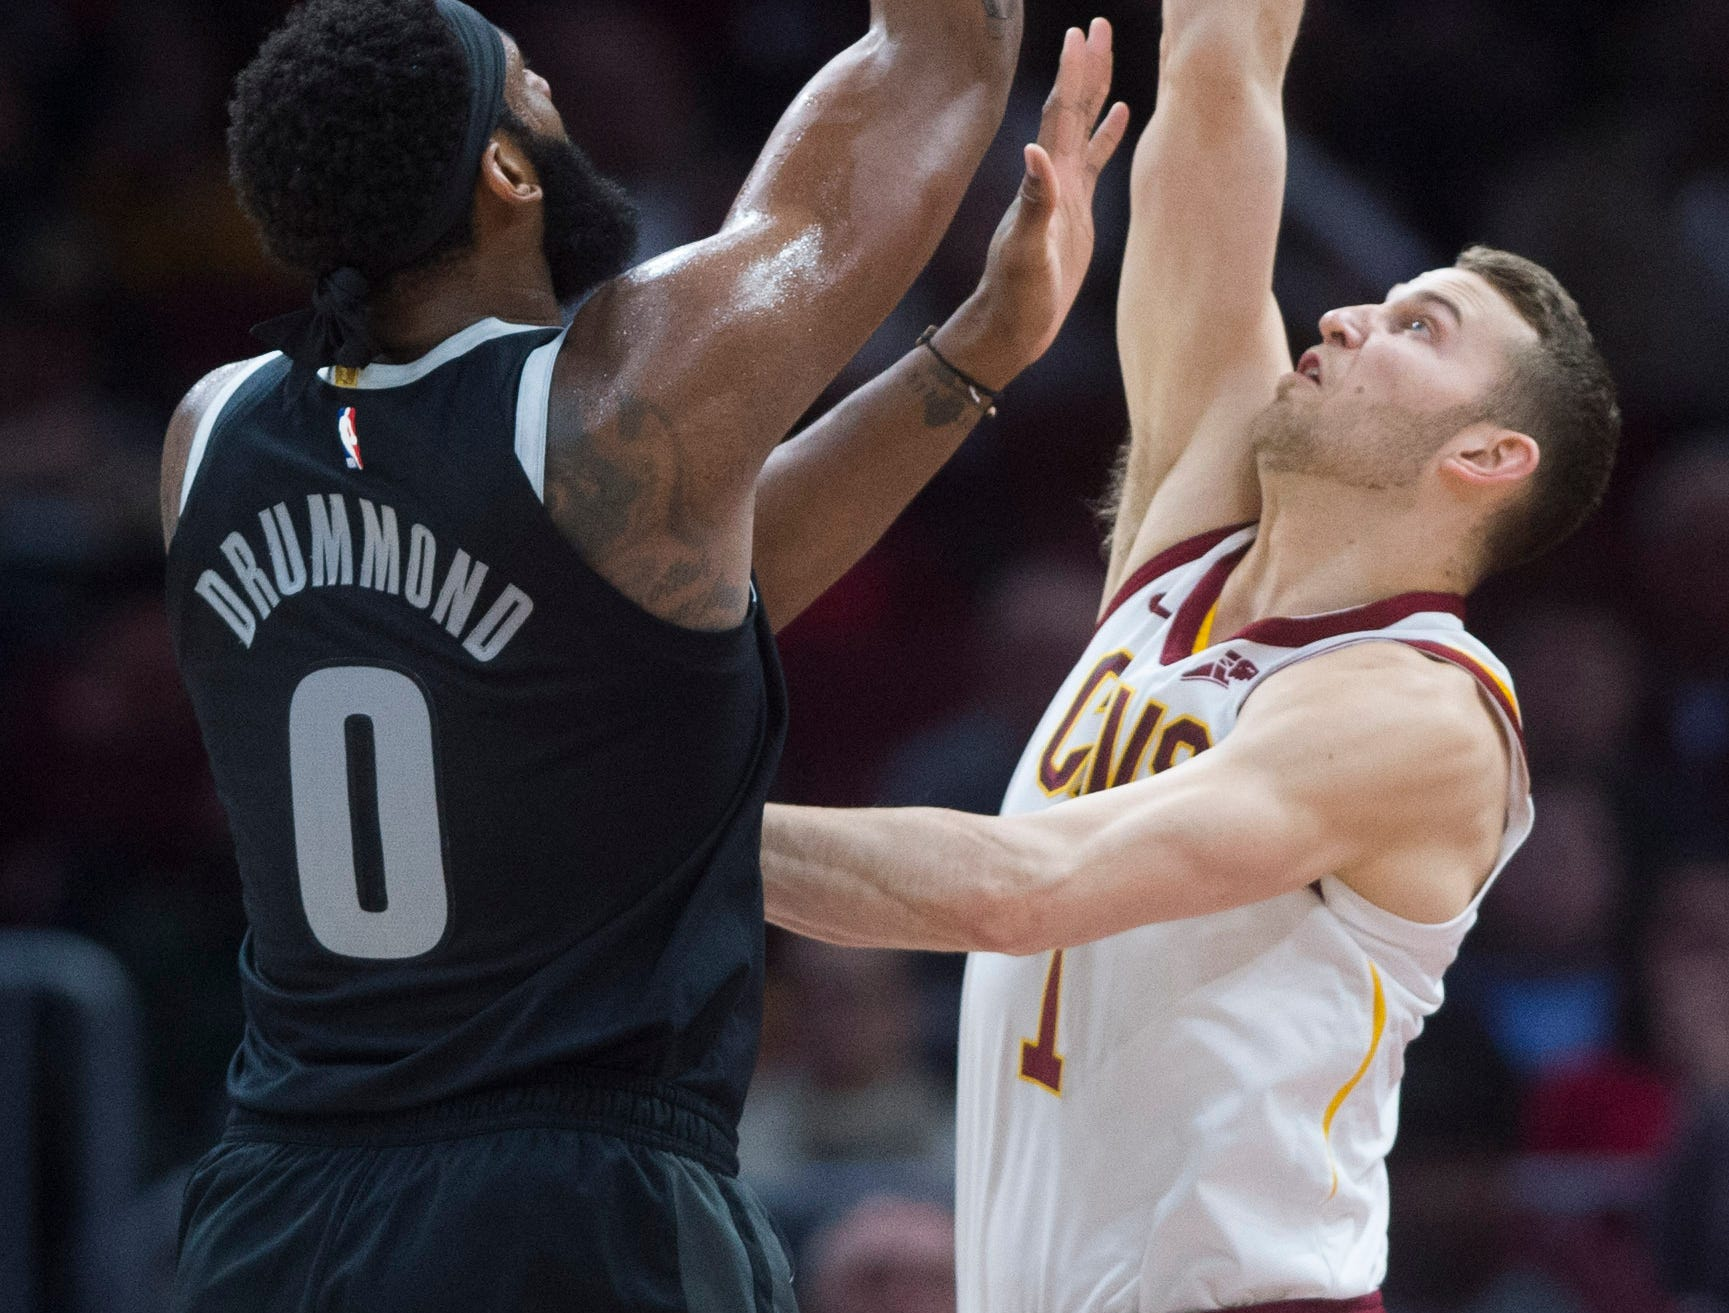 Detroit Pistons' center Andre Drummond shoots over Cleveland Cavaliers' guard Nik Stauskas in the first half of an NBA basketball game.